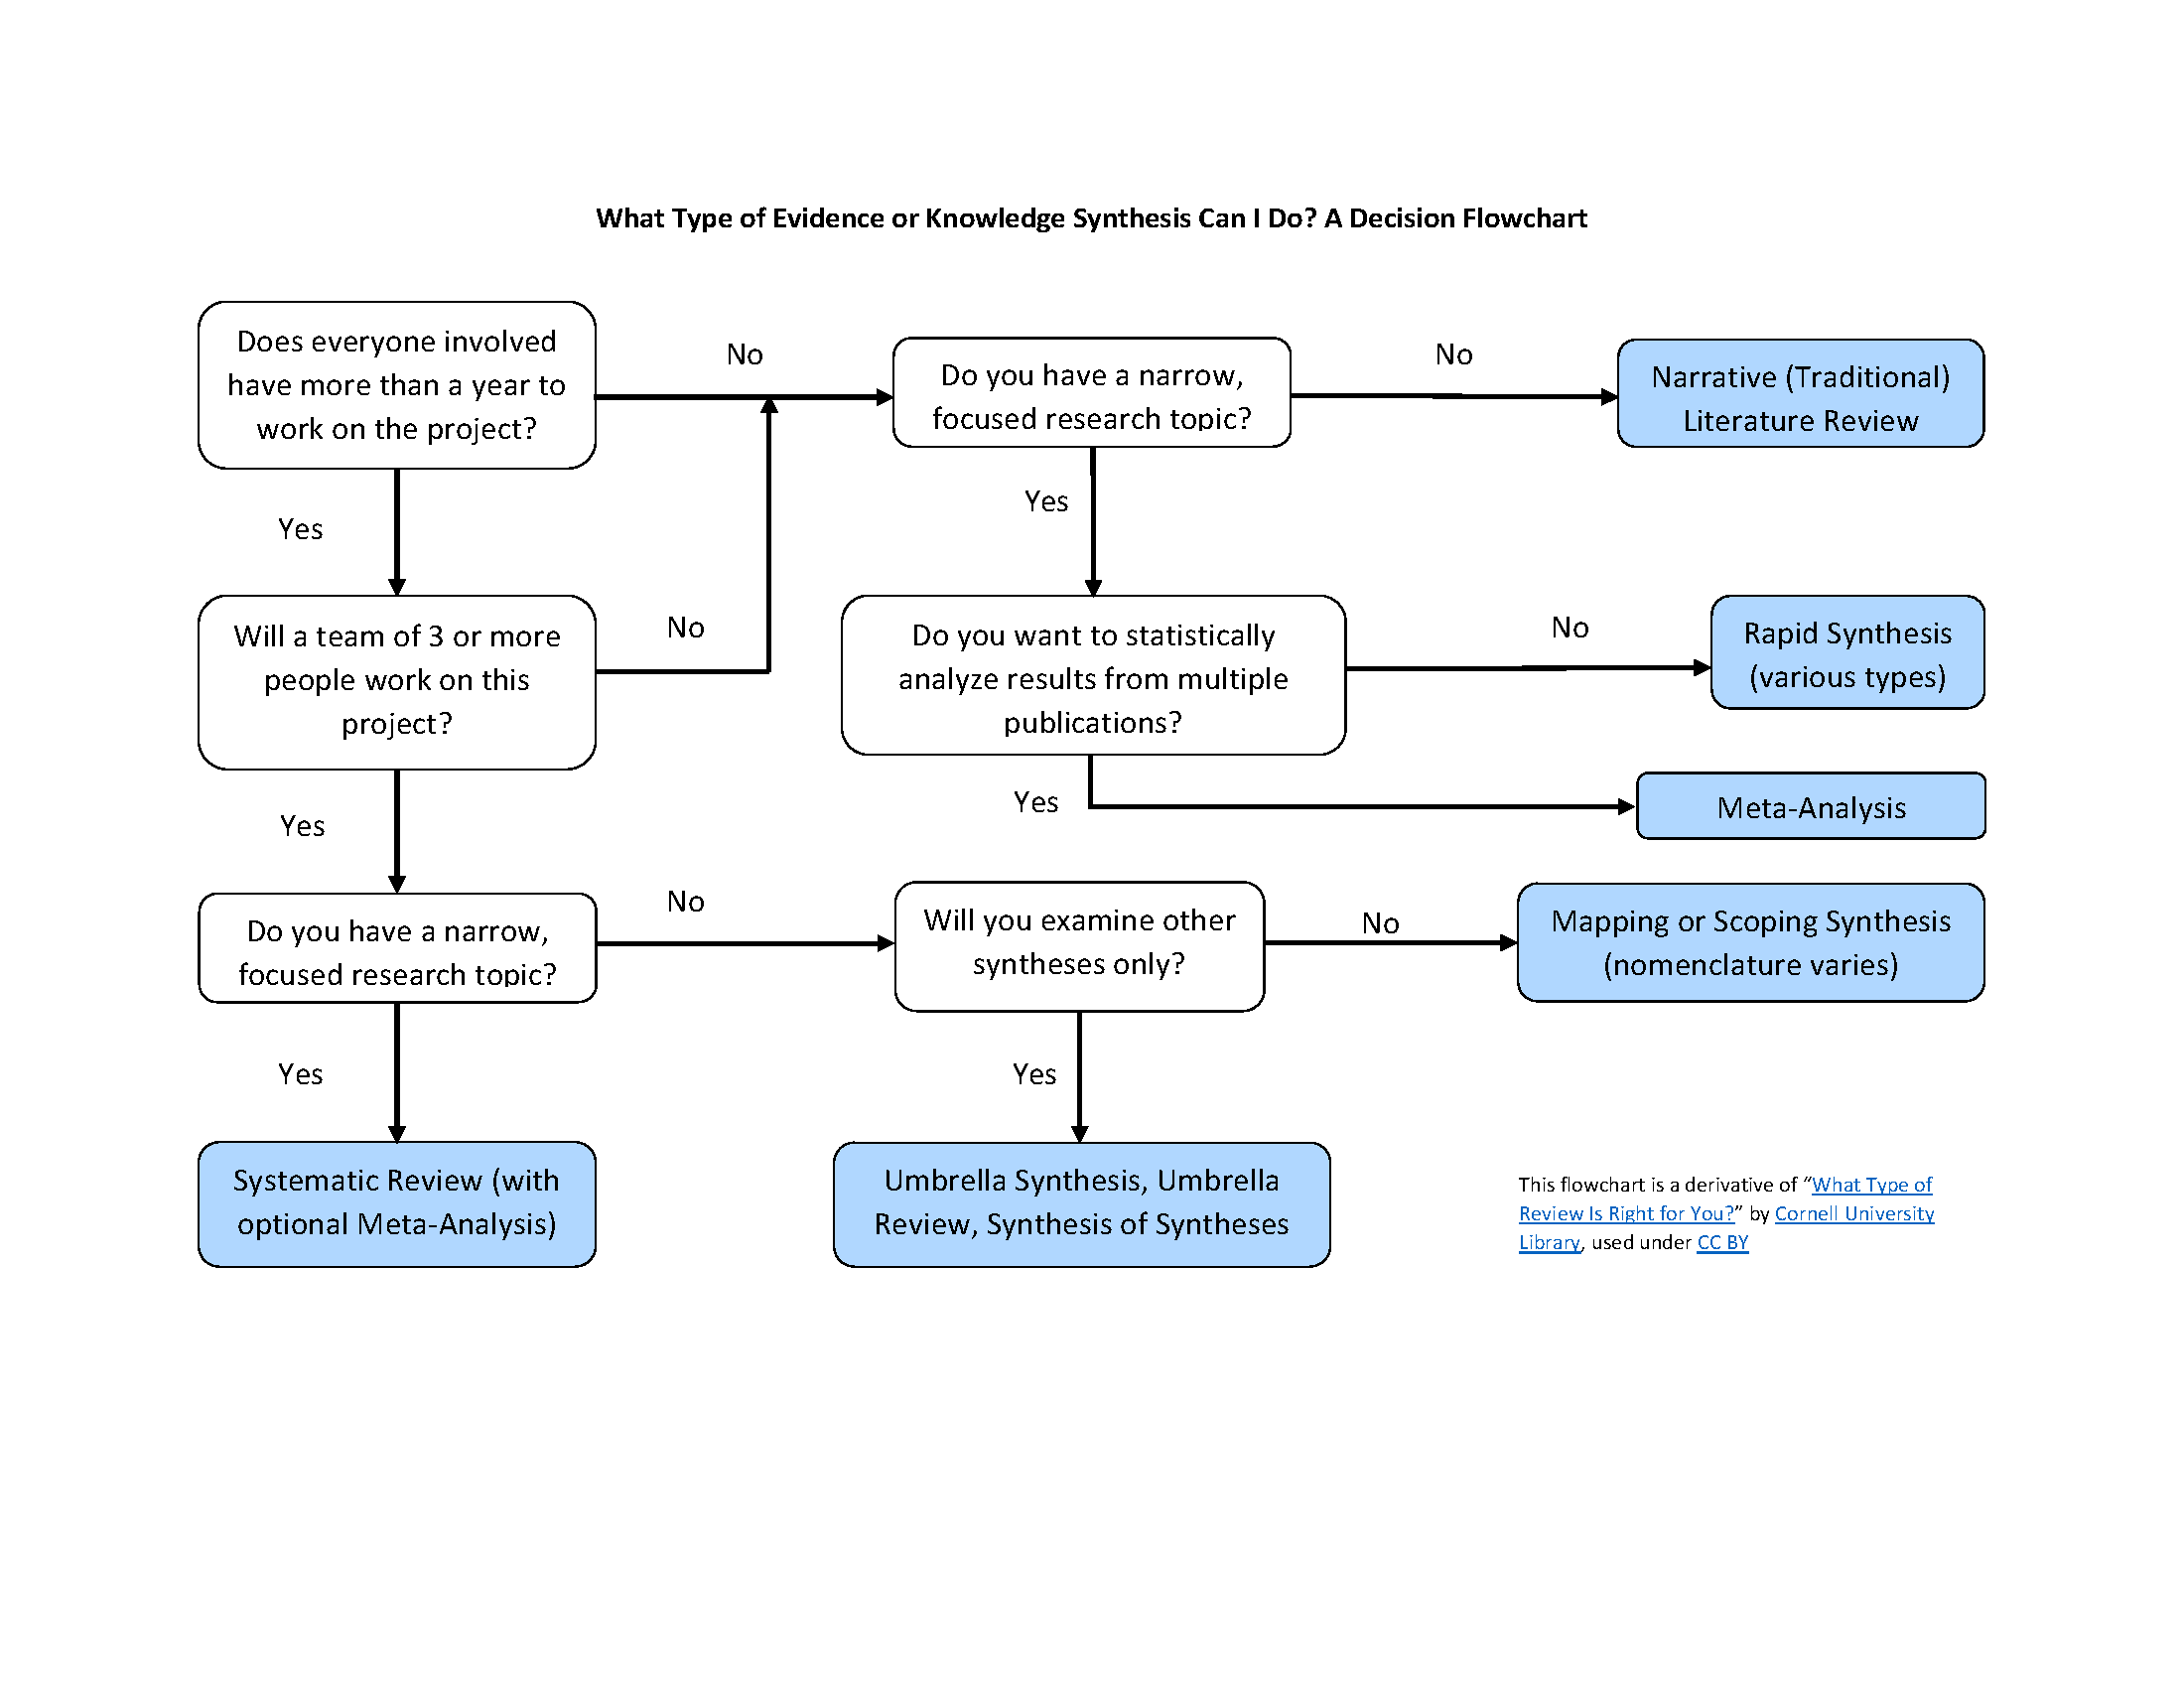 Flowchart image of What Type of Evidence or Knowledge Synthesis Can I Do? - see outline